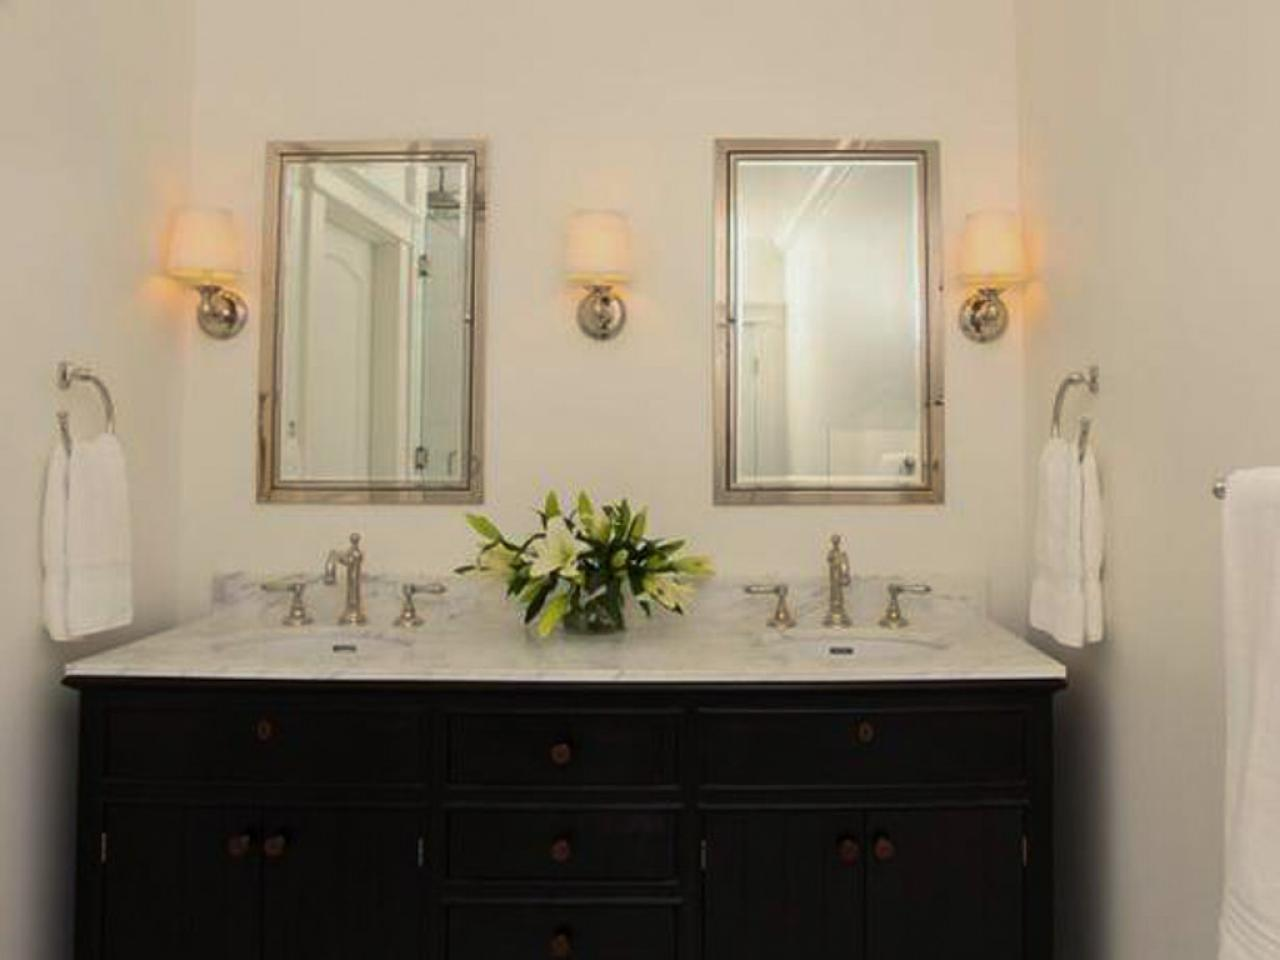 Fascinating Bathroom with Dark Bathroom Cabinet Ideas and White Marble Top under Glossy Framed Wall Mirrors